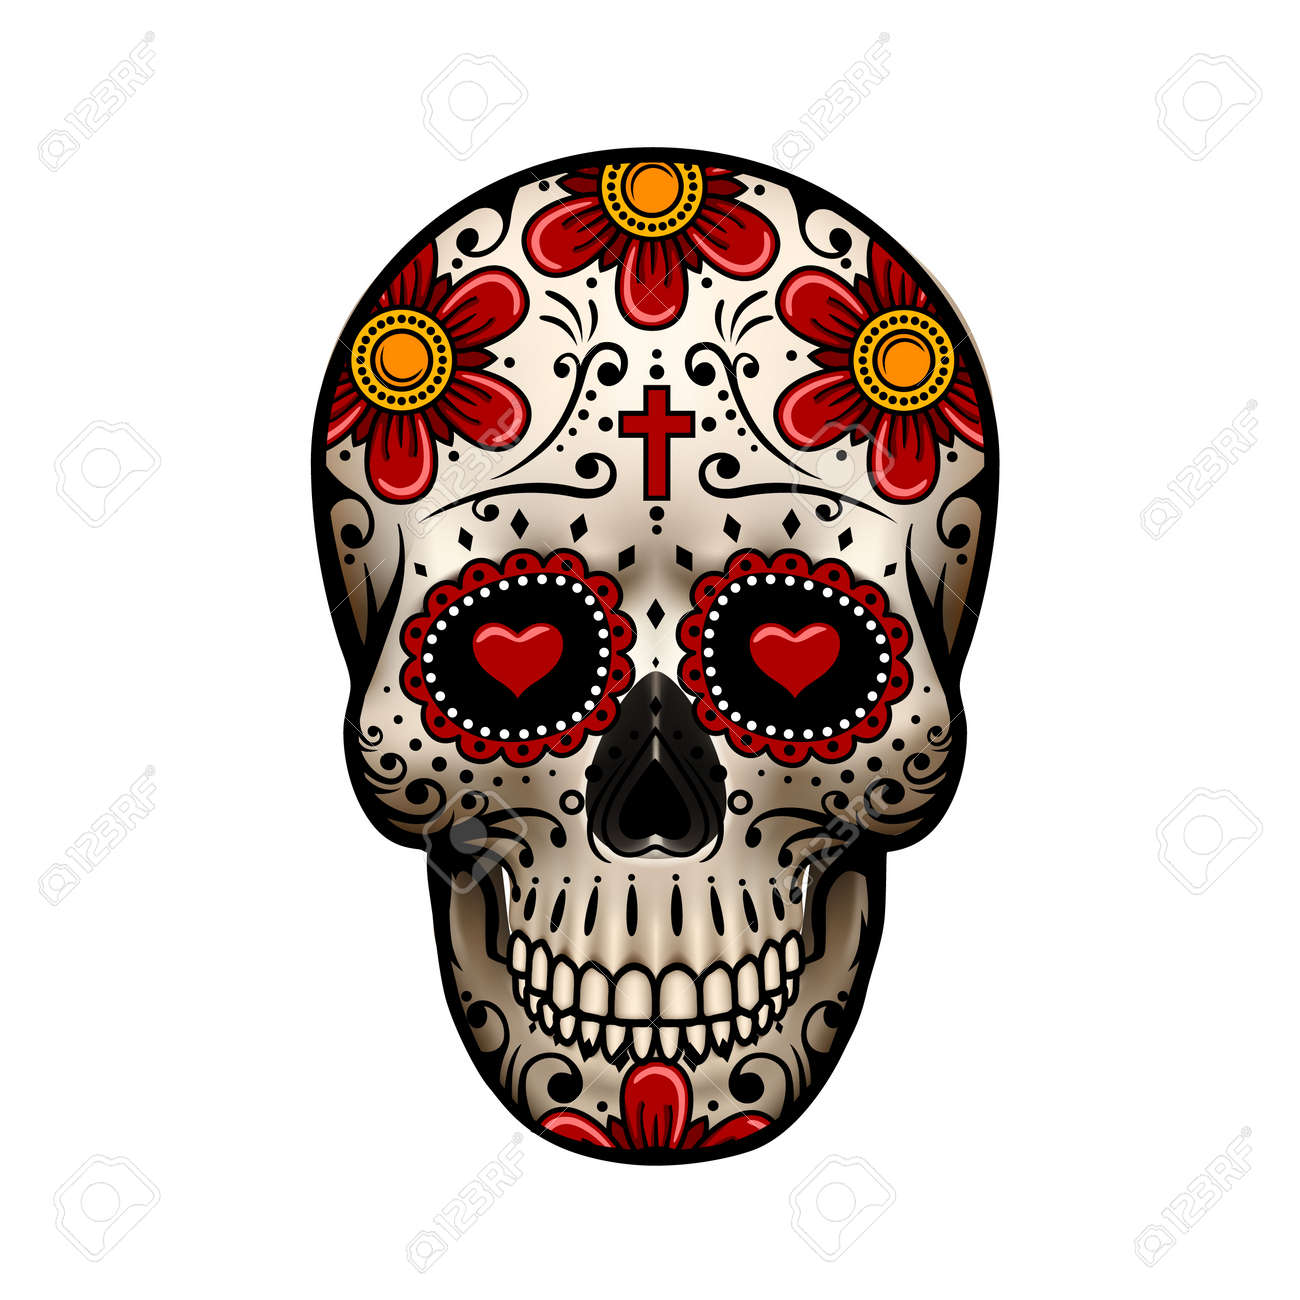 day of the dead skull skull with flower design skull tattoo rh 123rf com day of the dead vector graphics day of the dead girl vector